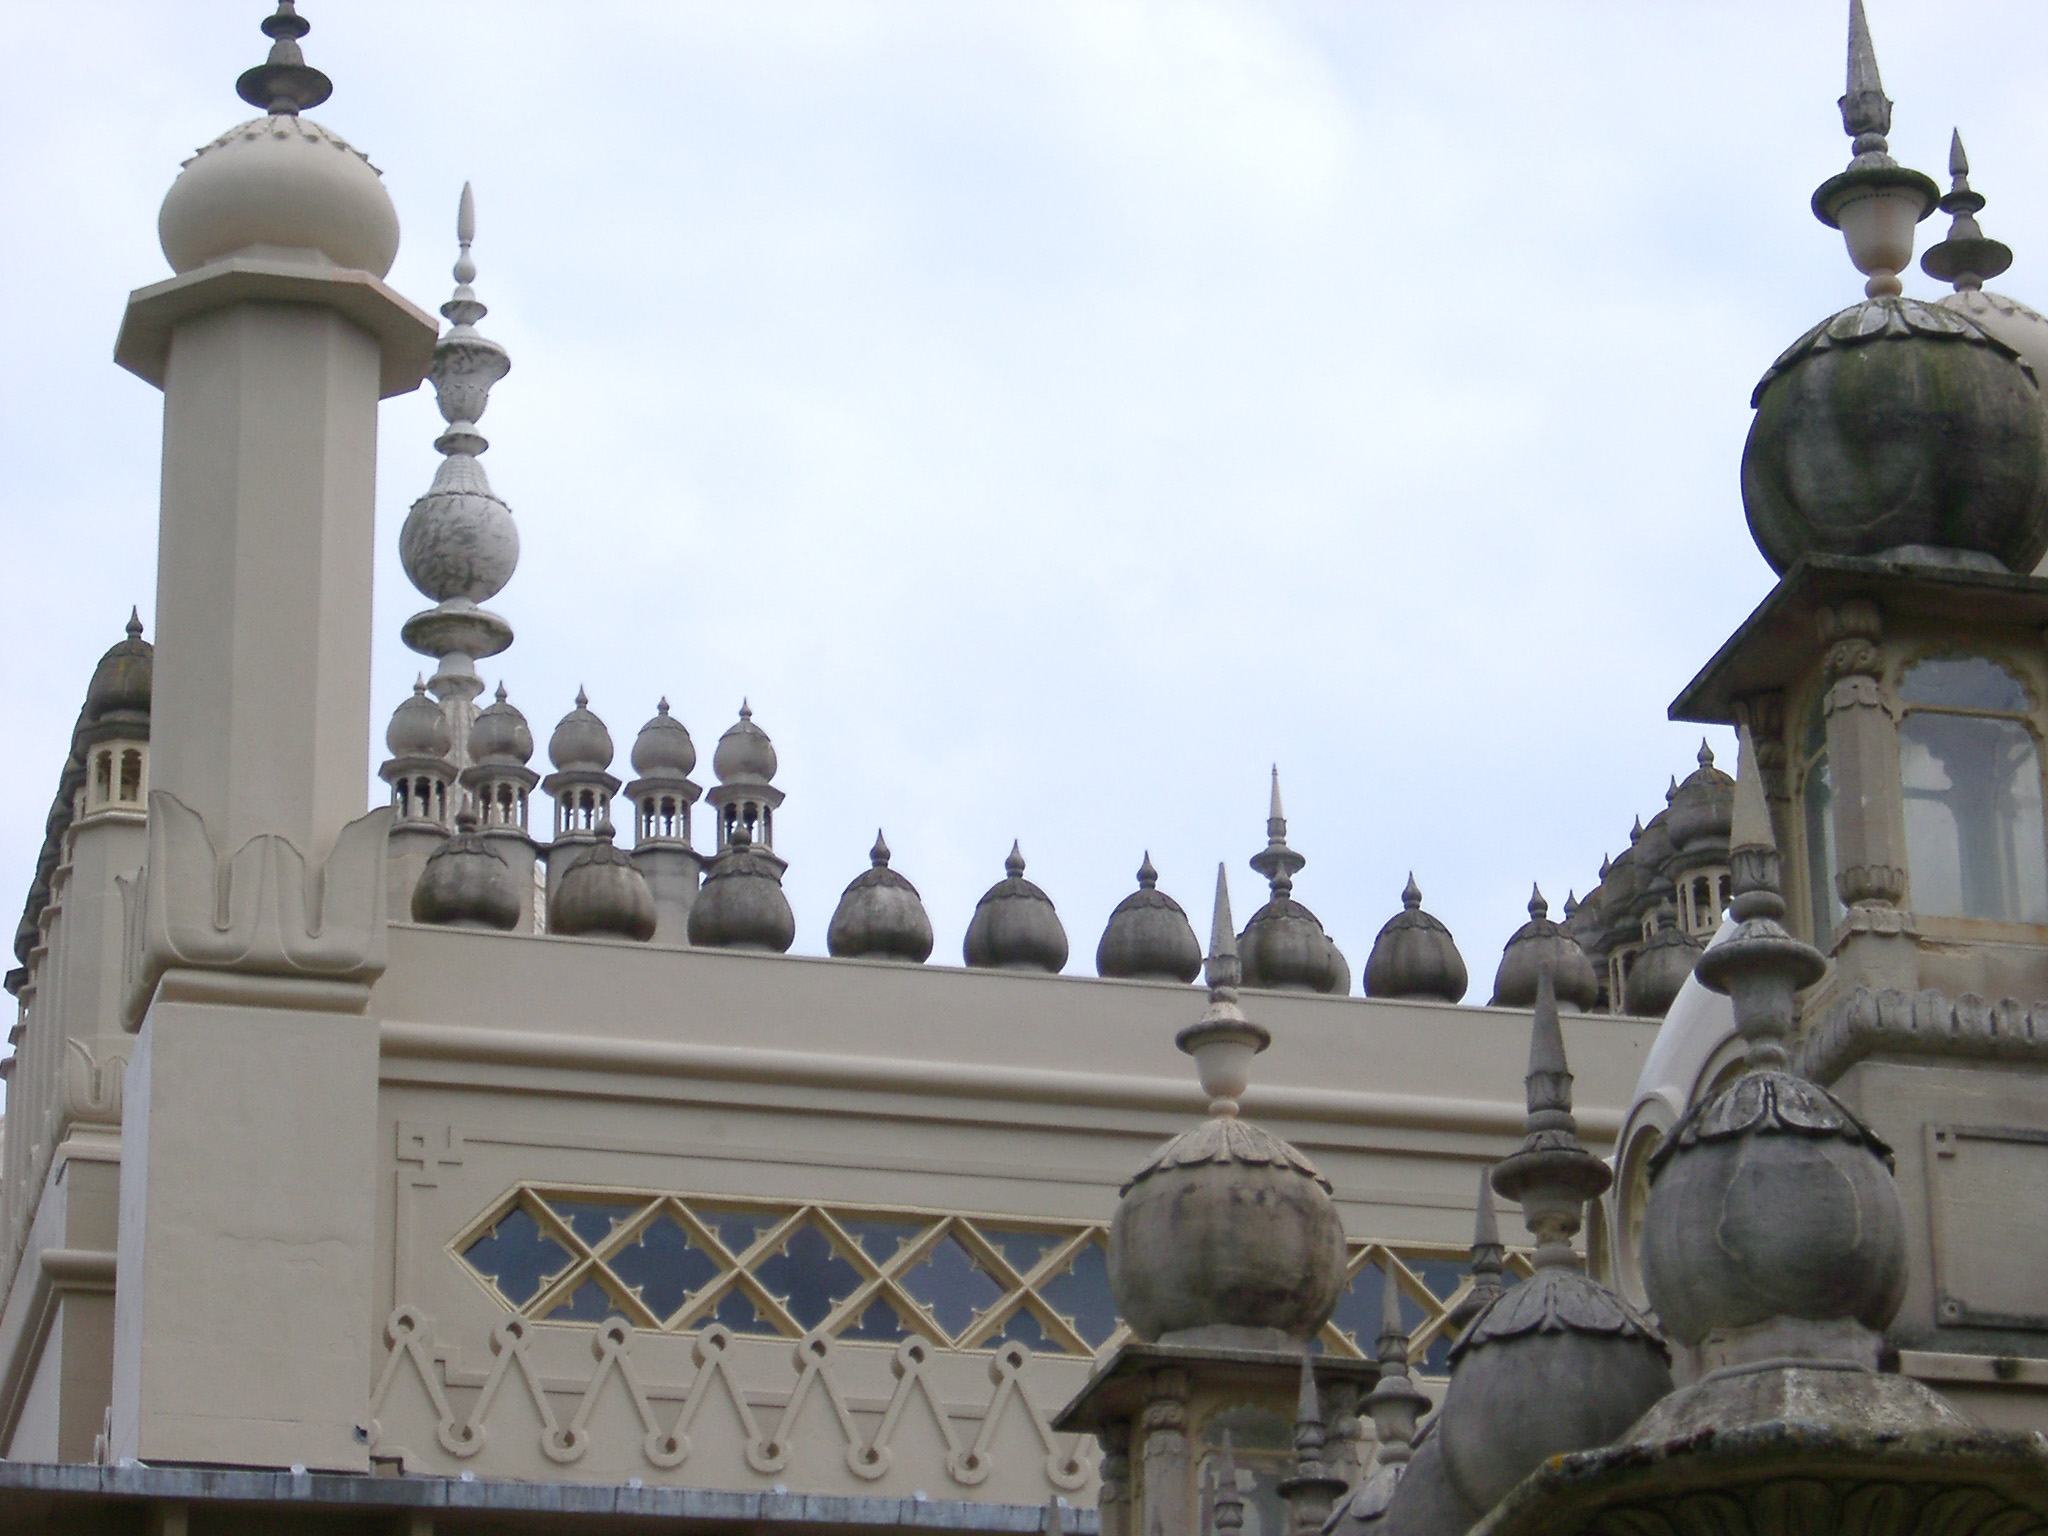 Architectural Design of Famous Royal Pavilion Building at Brighton, England. Captured on Light Blue Sky Background.